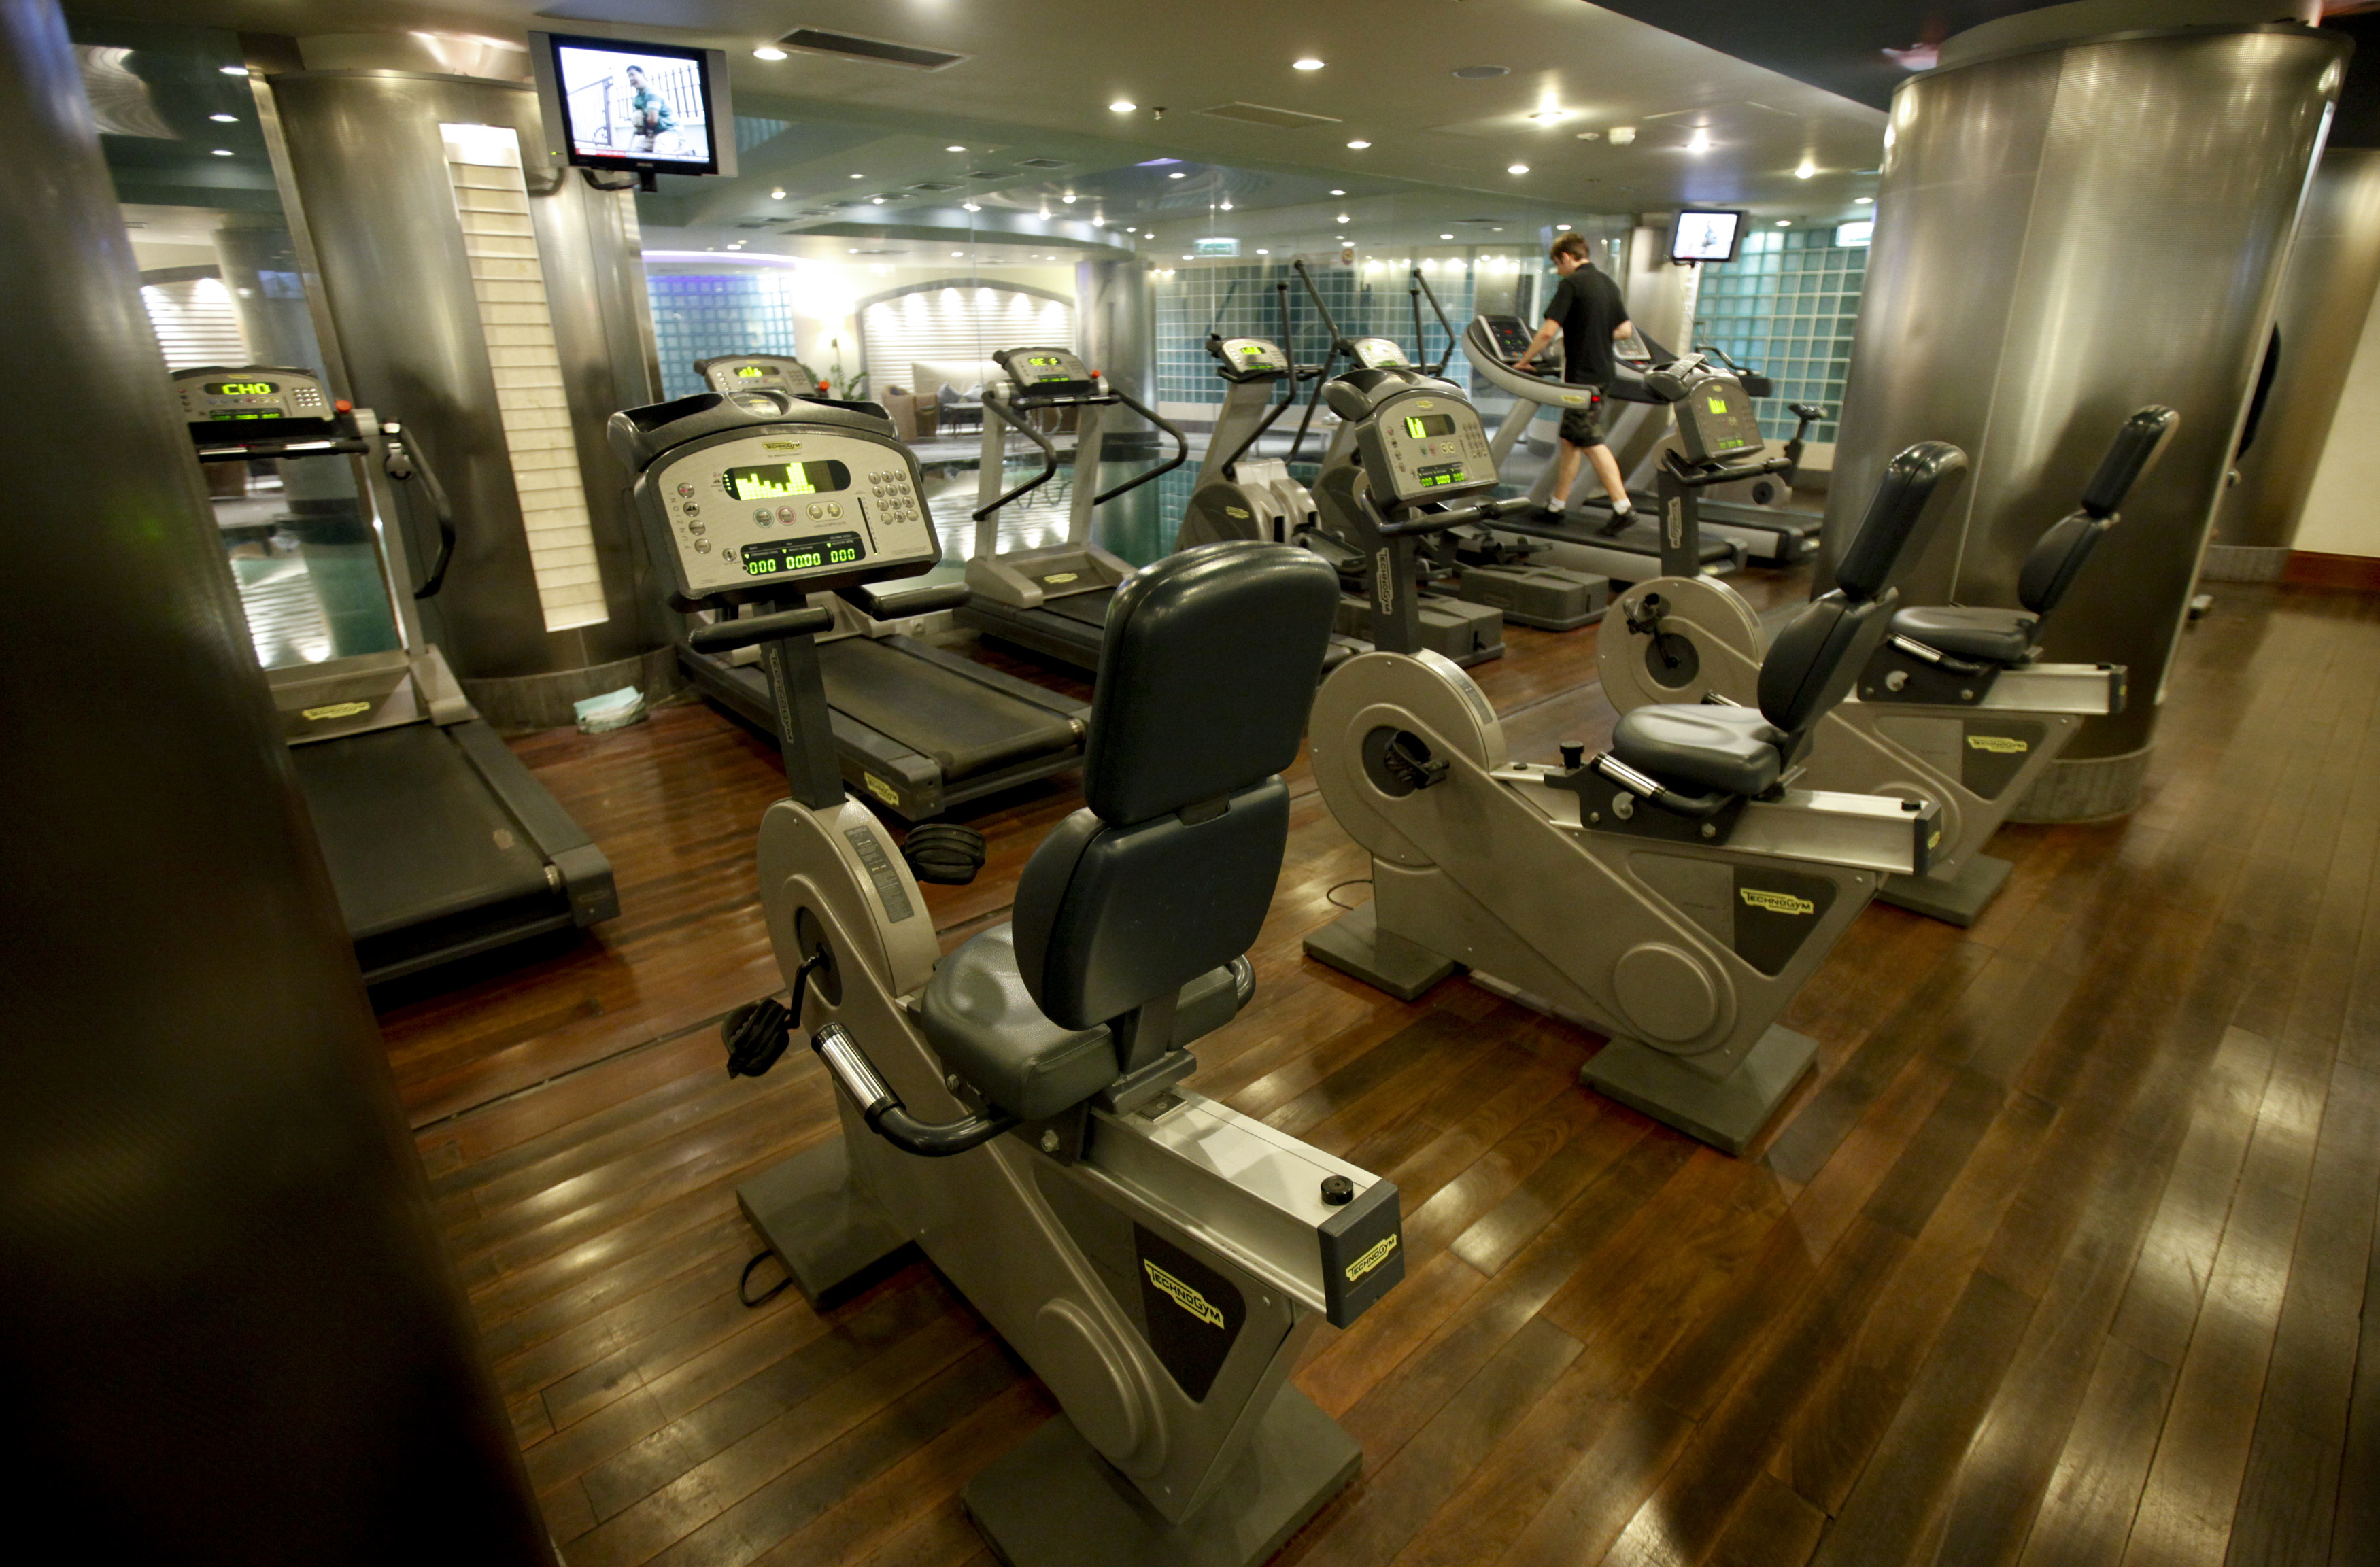 A view of a gym at the spa facility at the Hyatt Regency Hotel in Warsaw